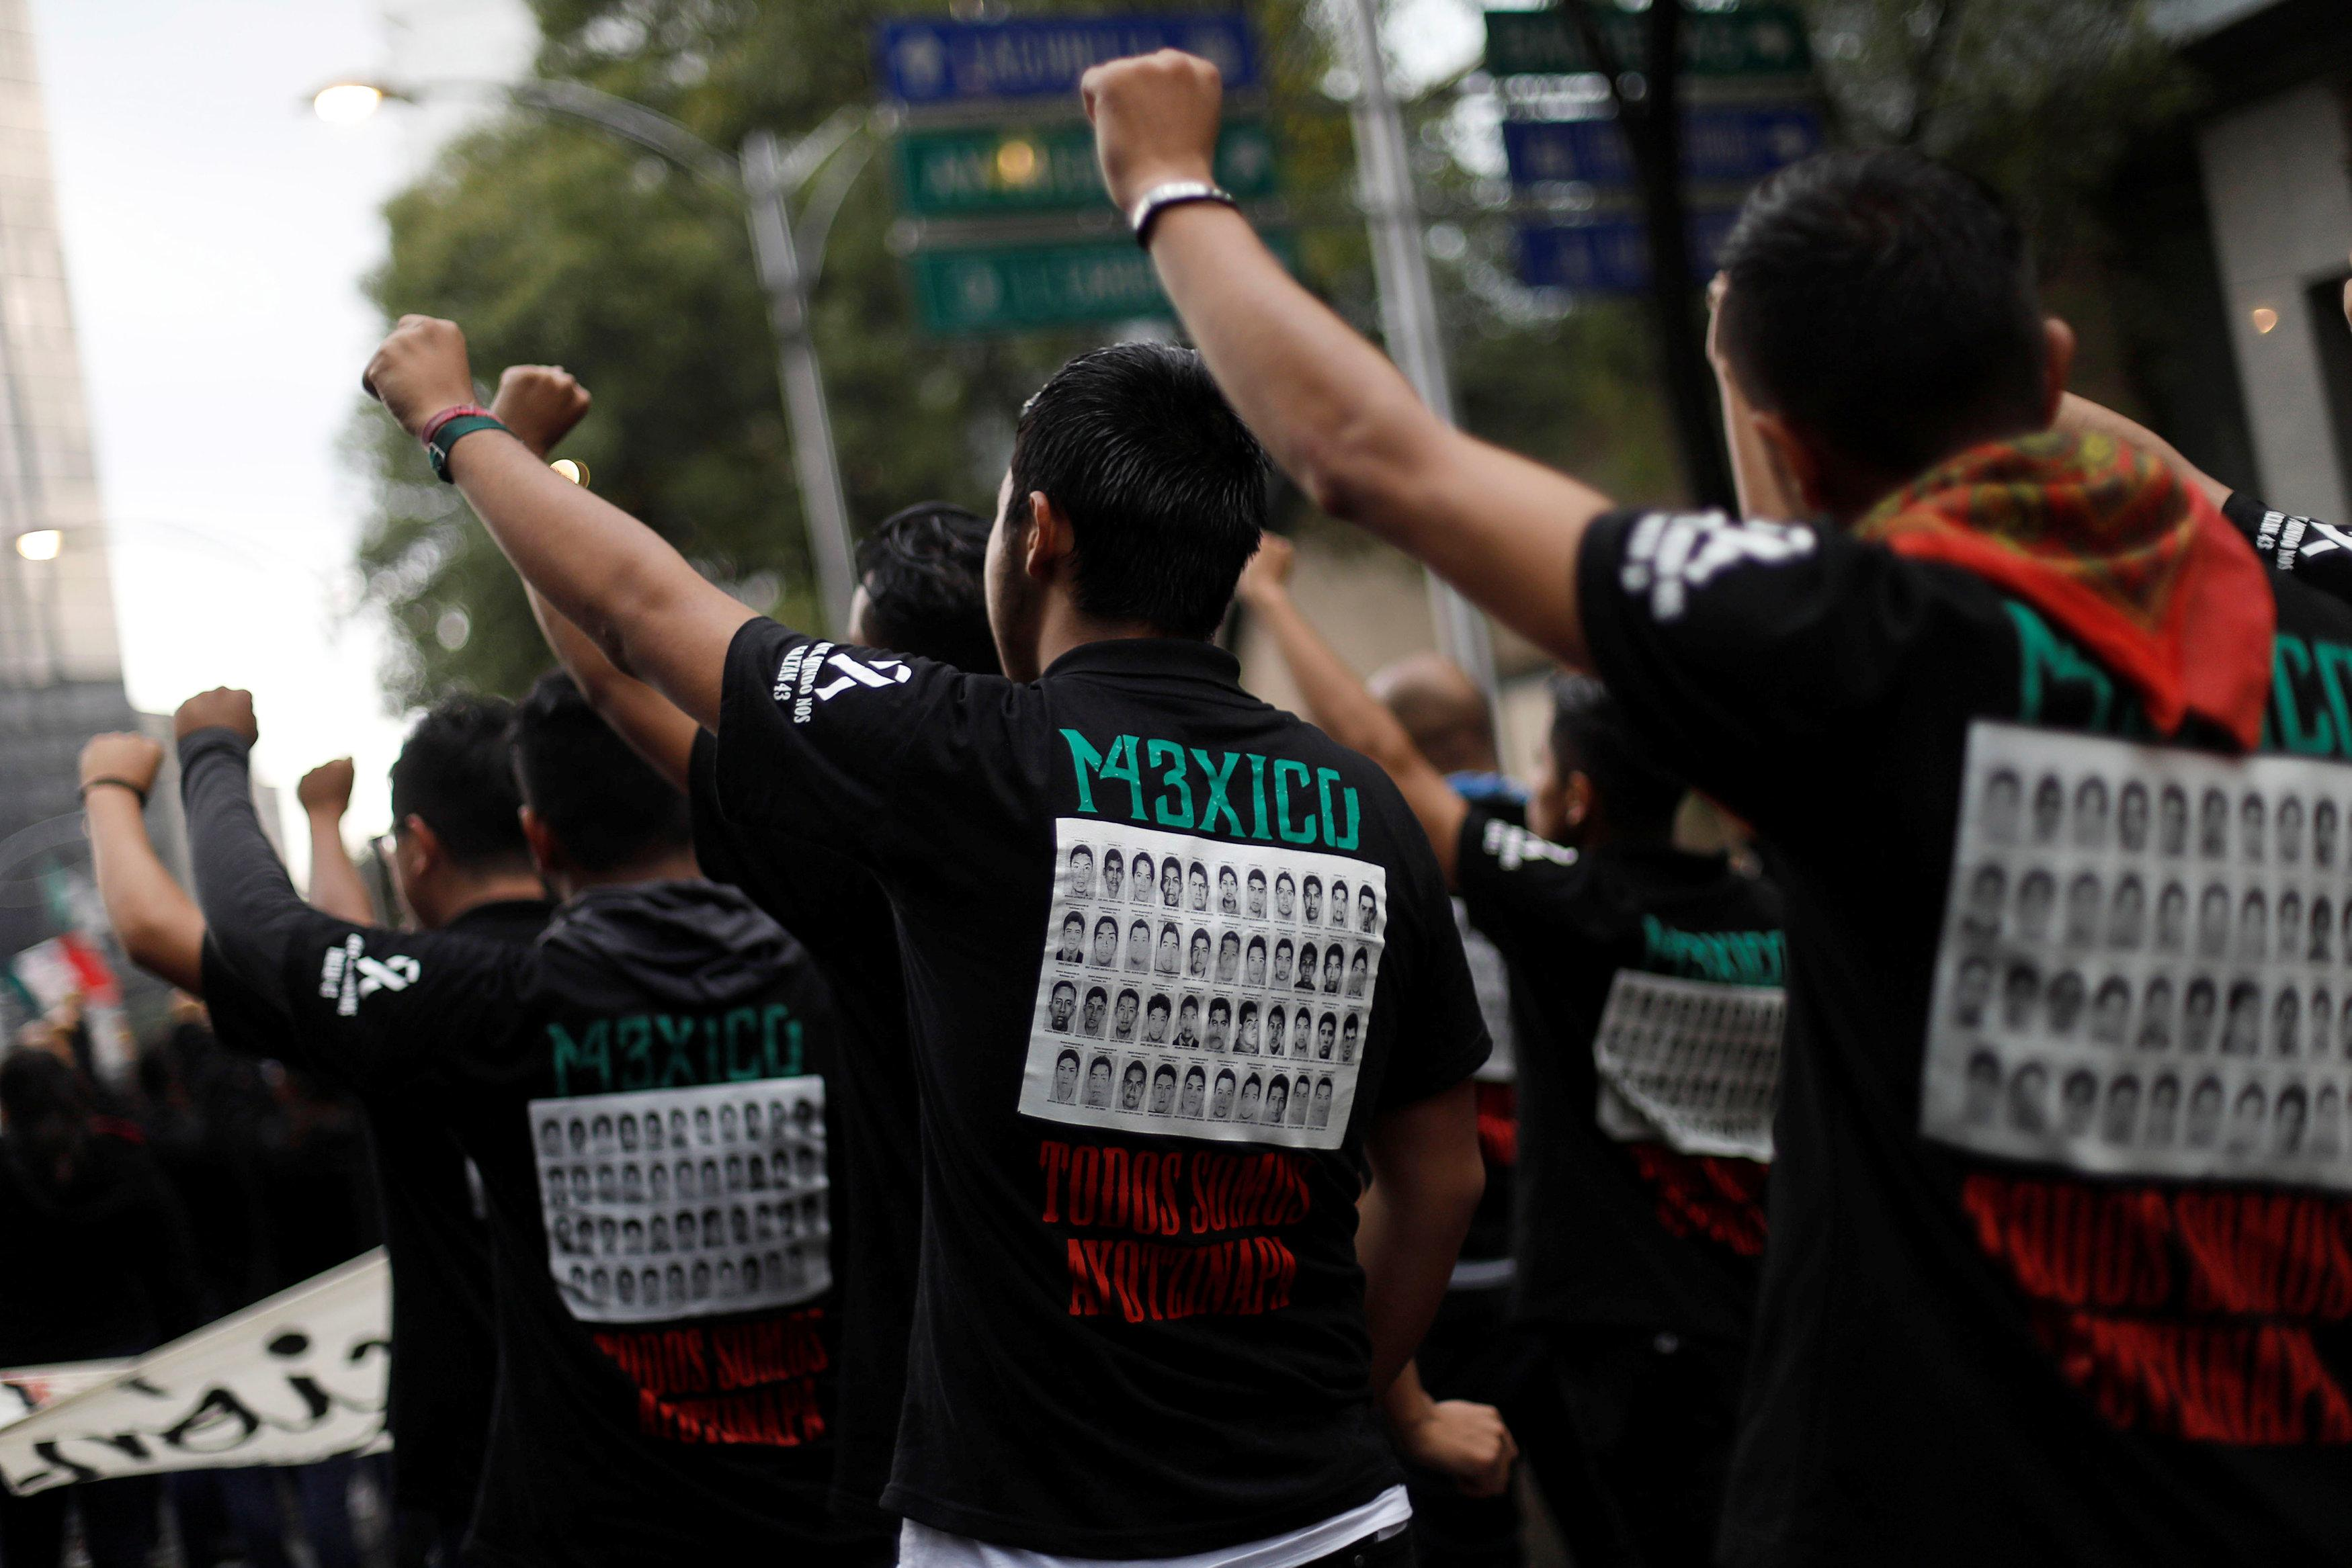 Demonstrators gestures during a march to mark the fourth year since the disappearance of the 43 students of training college Raul Isidro Burgos in the state of Guerrero, in Mexico City, Mexico September 26, 2018. Edgard Garrido